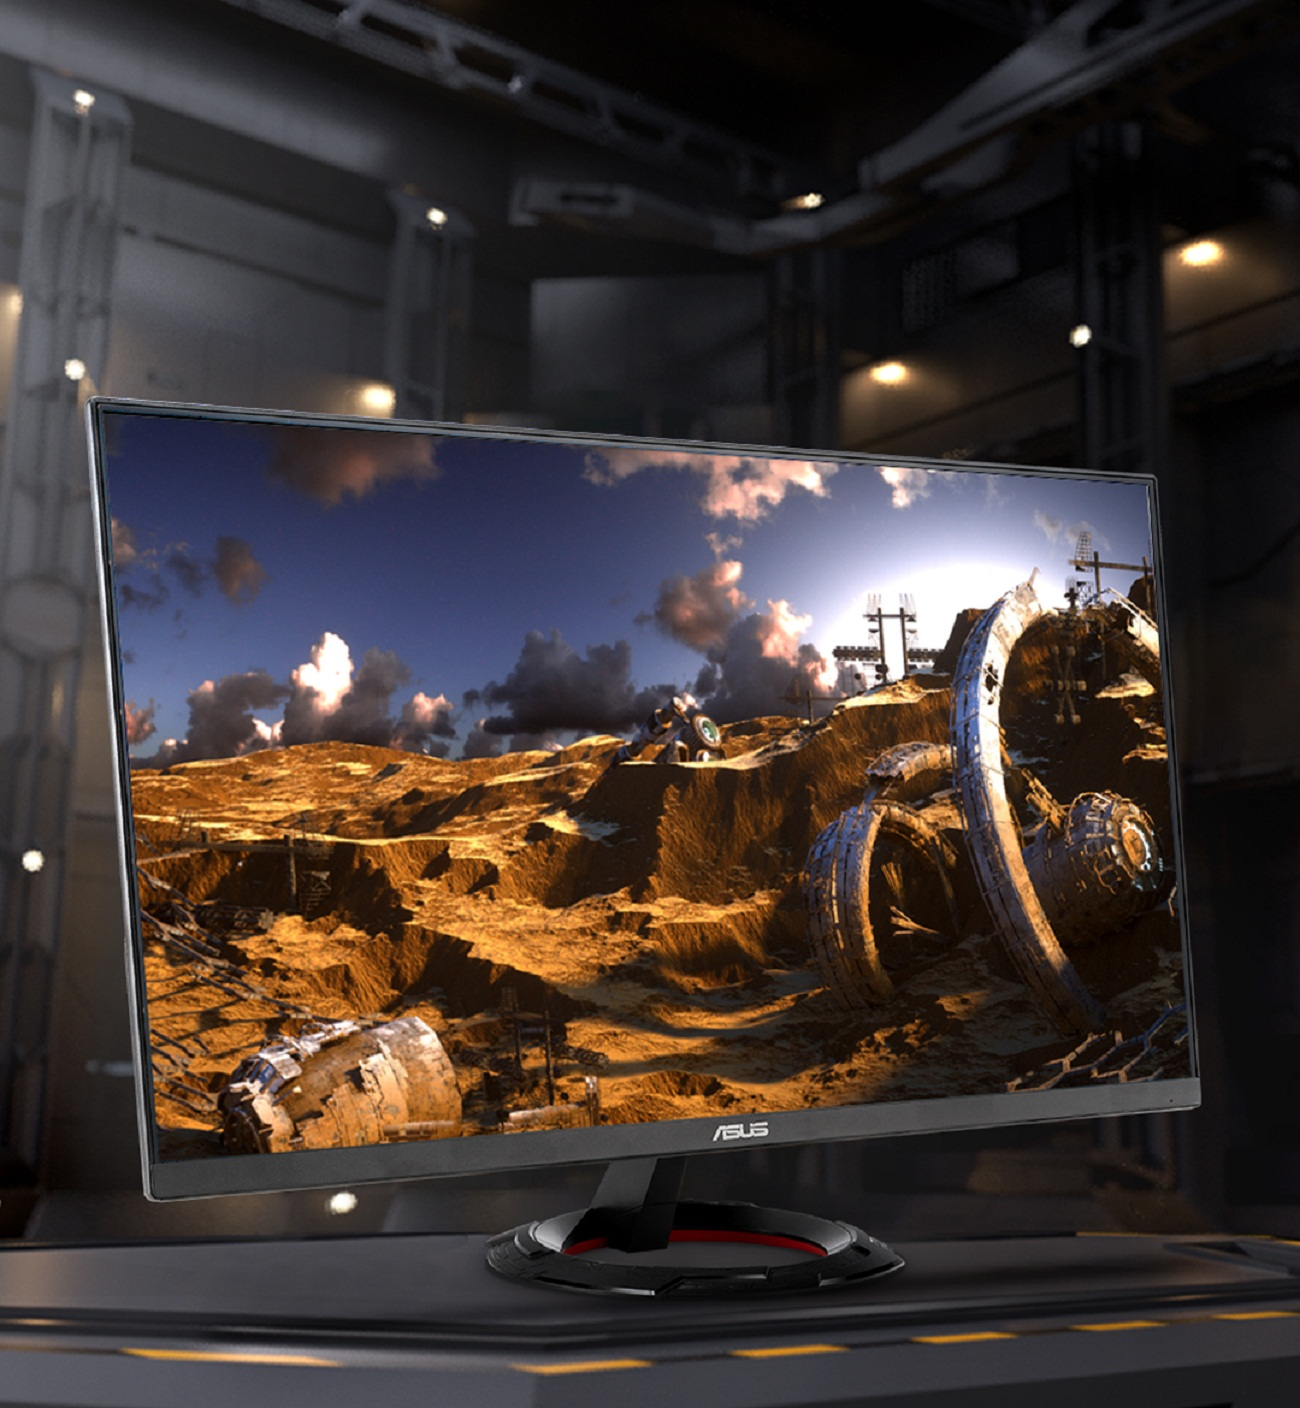 ASUS Uncovers Its TUF Gaming VG279Q1R Monitor – 27 Inch Full HD, 1080p, A 144Hz Refresh Rate And More